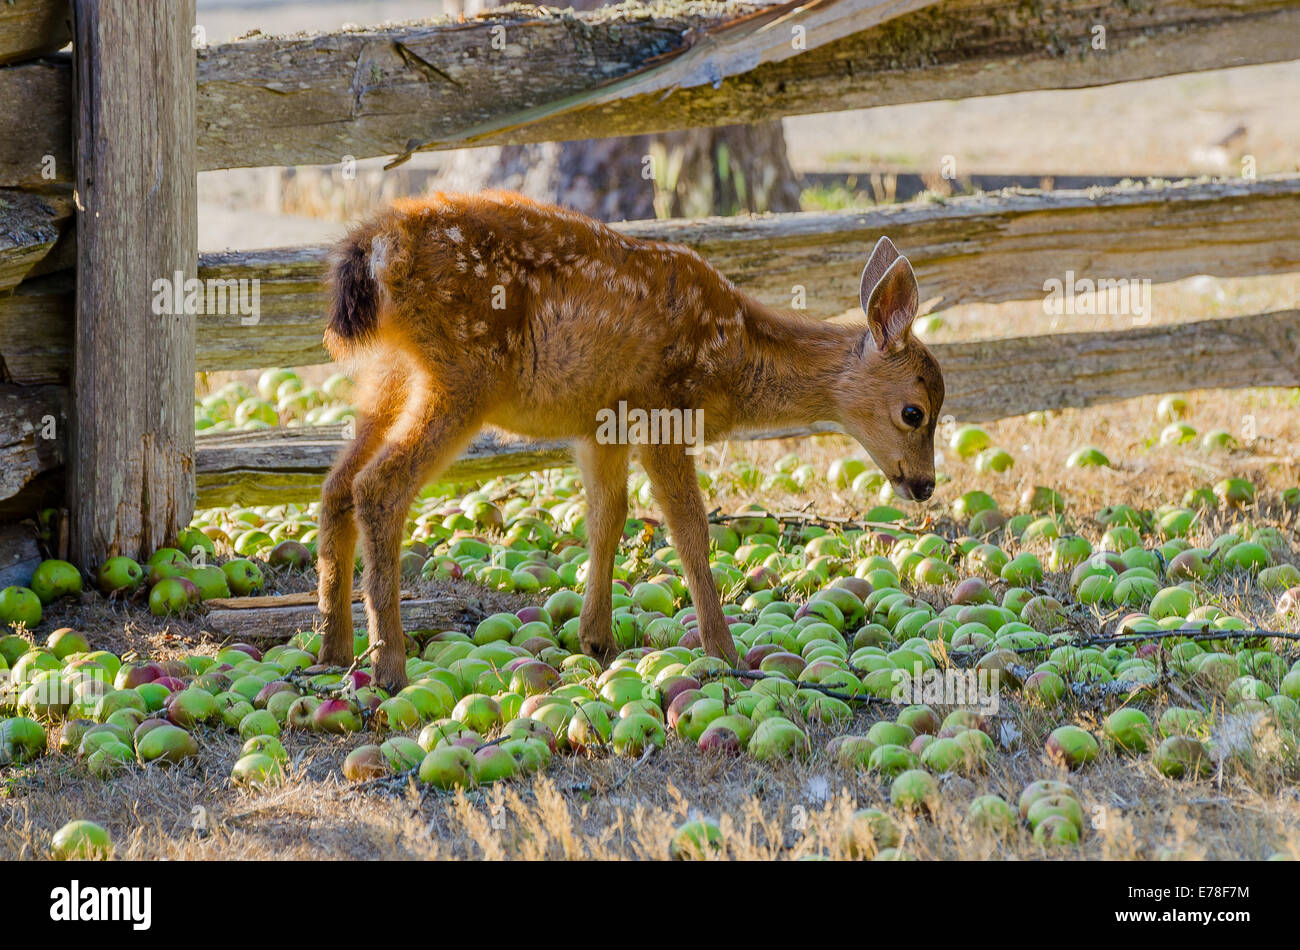 Young deer eating apples at the Ruckle farm, Ruckle Provincial Park, Salt spring Island, British Columbia, Canada - Stock Image